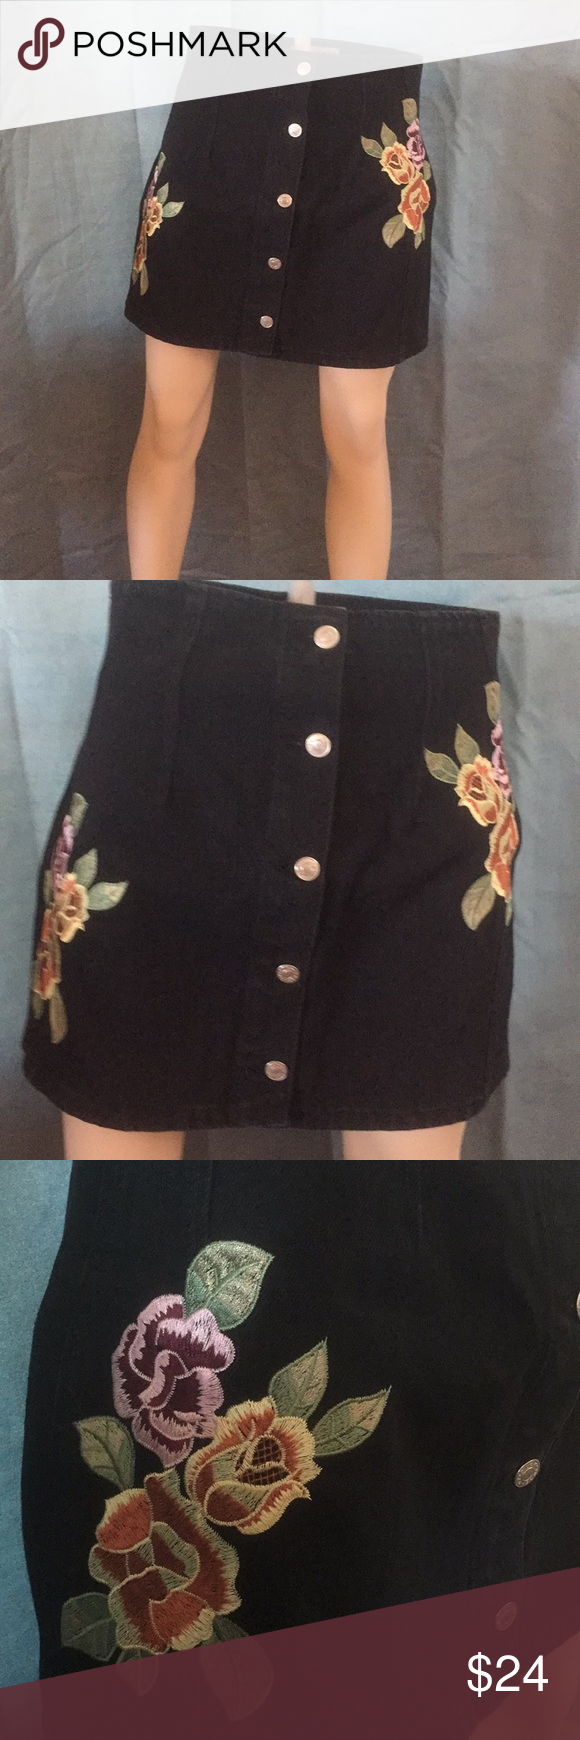 """644b92c6f6 Top Shop Moto black embroidered floral denim skirt Top Shop Moto black  denim floral embroidered skirt. Button down front. 15"""" length & 28"""" waist."""